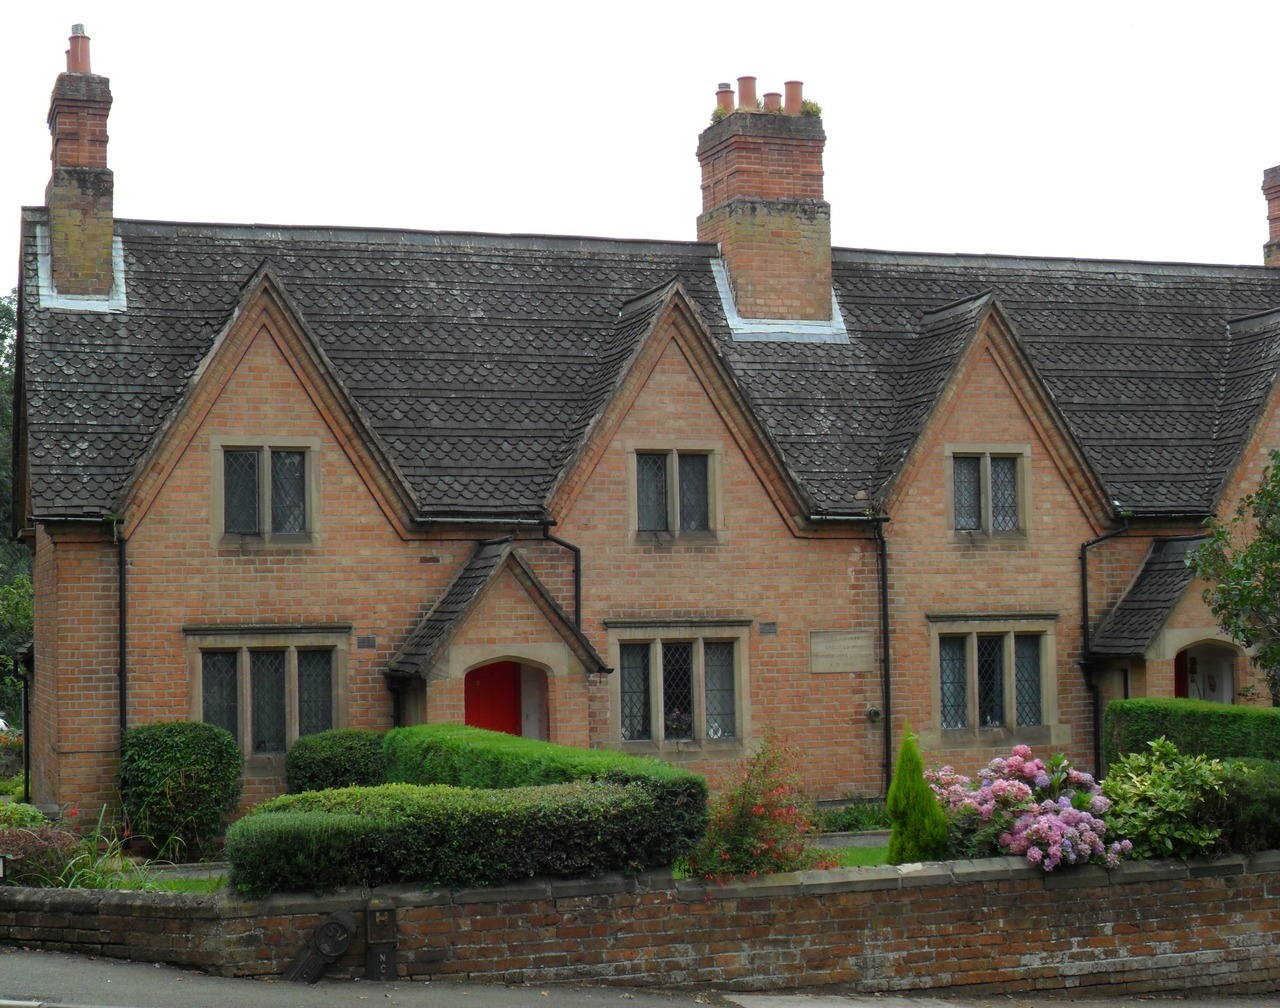 Lovely red brick terrace of cottages with gables, Bramcote, Nottingham.